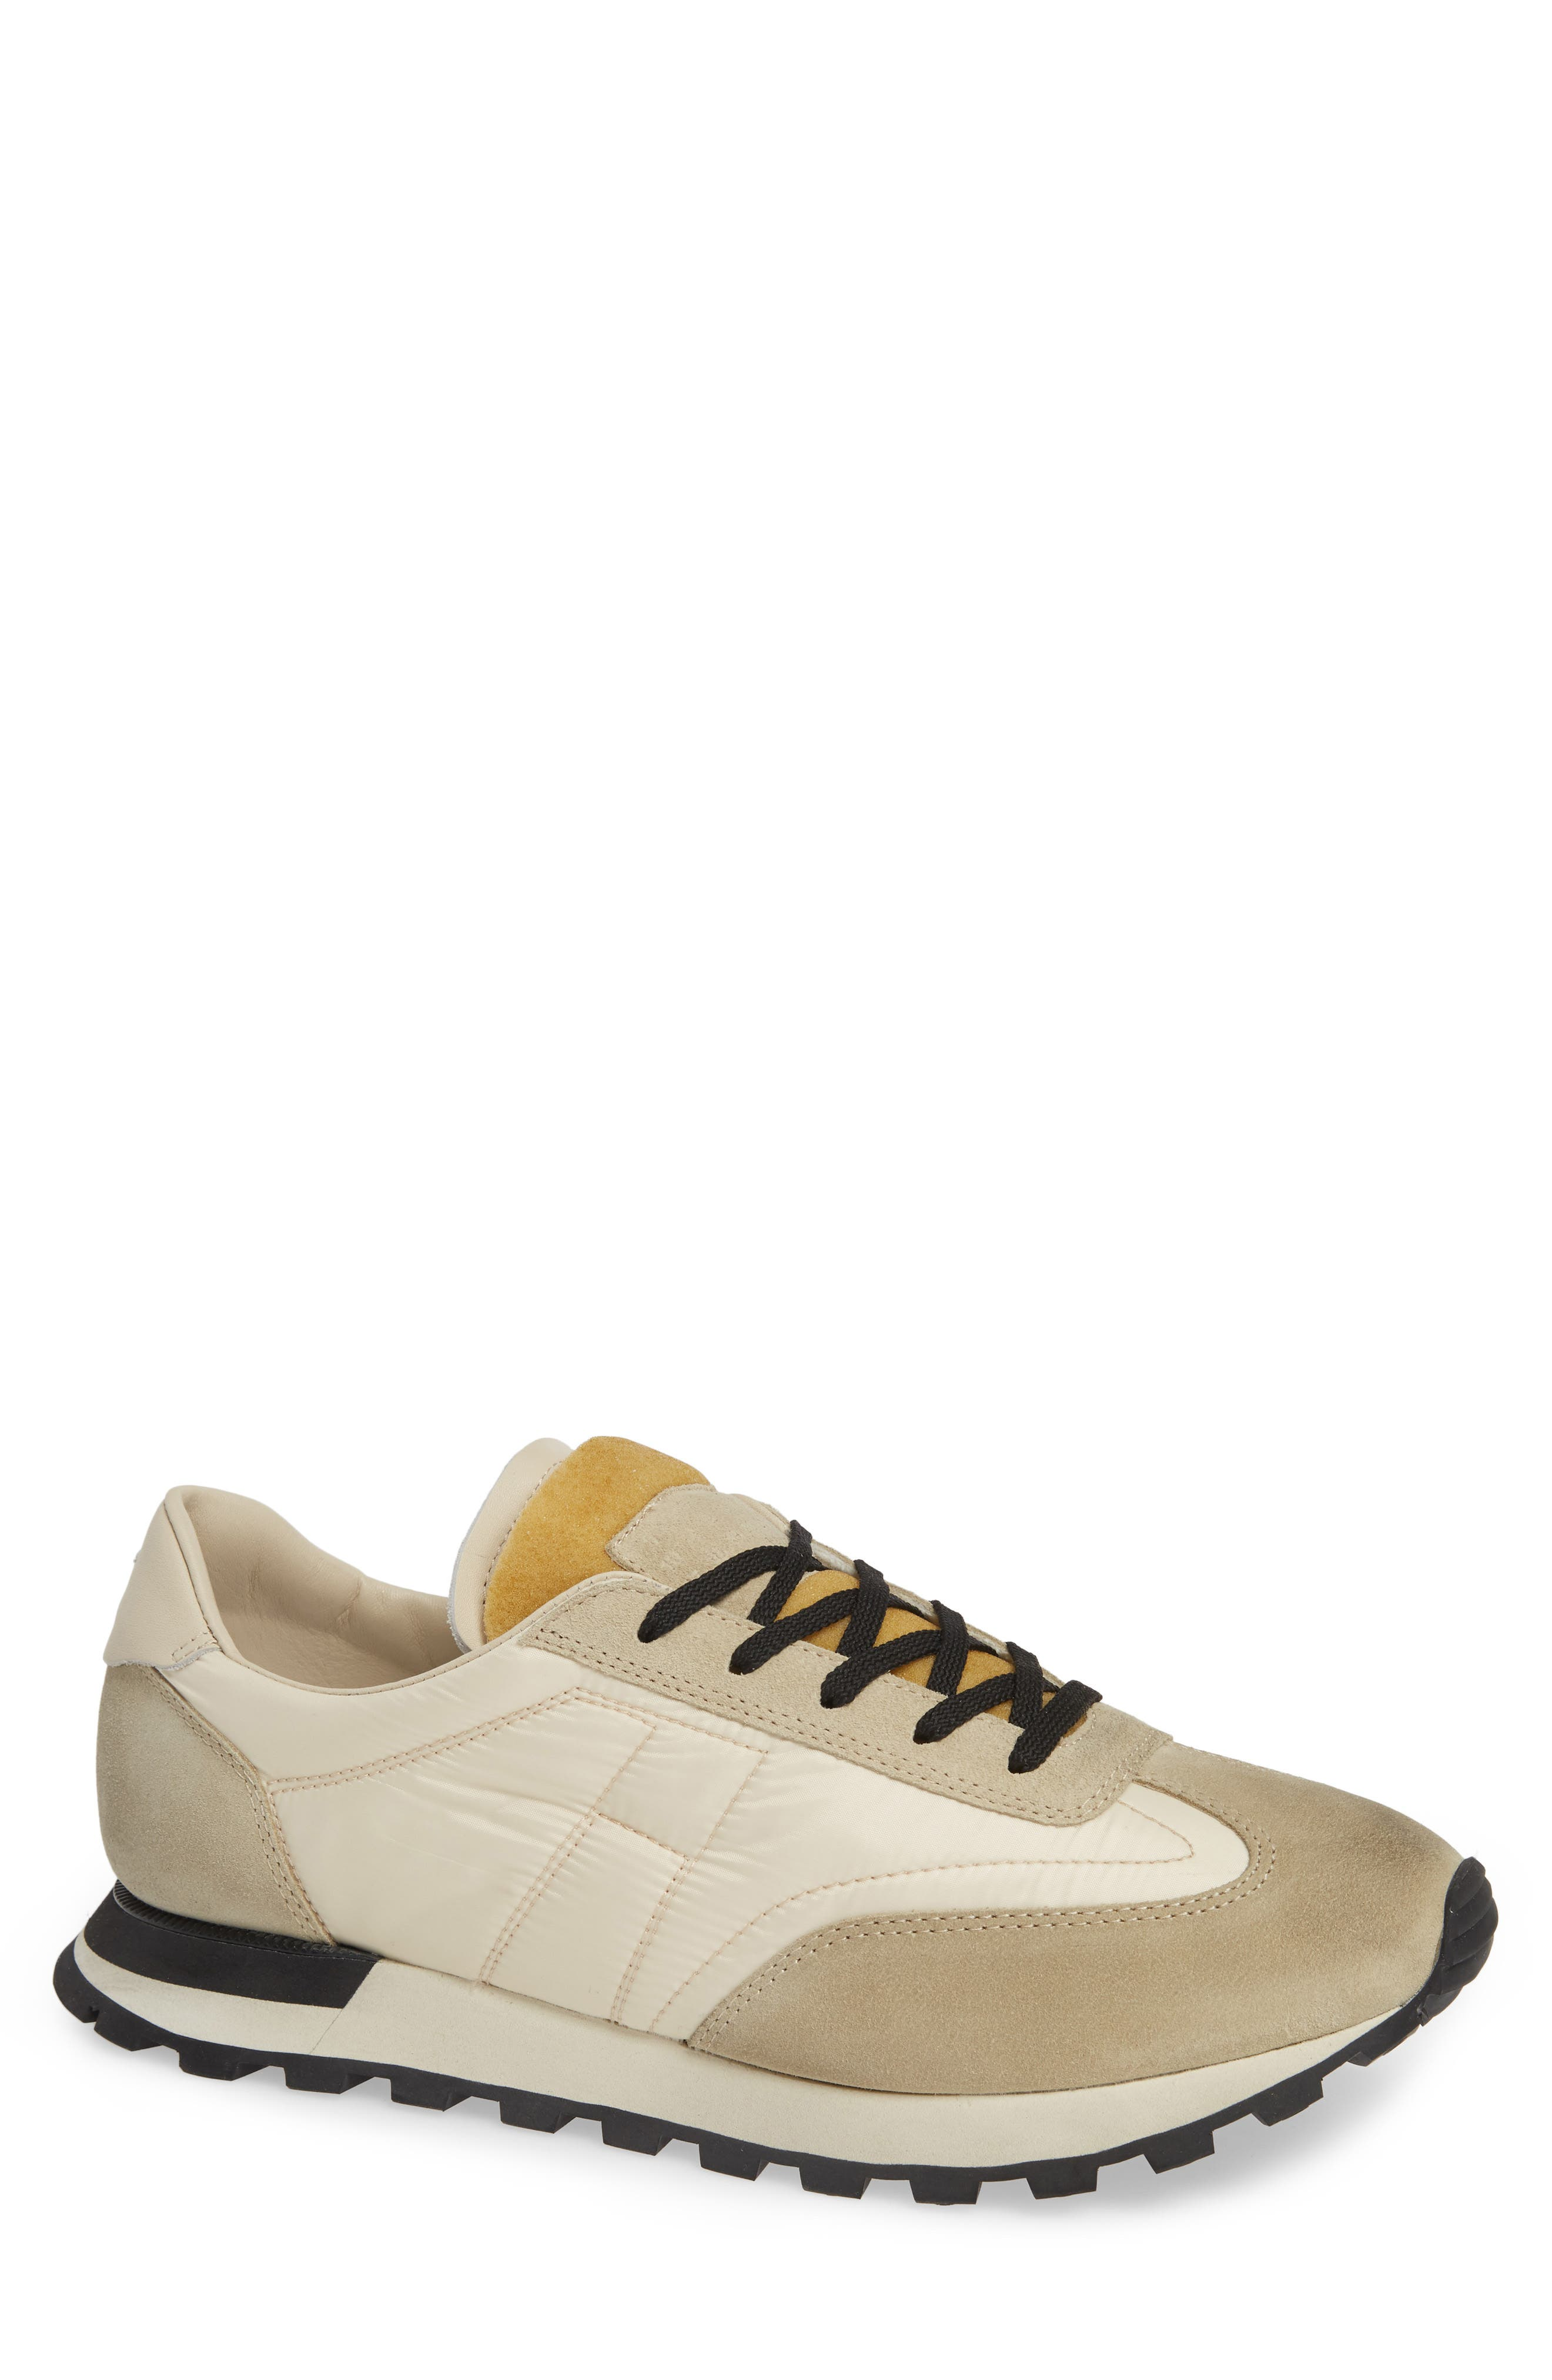 Maison Margiela Quilted Sneaker, Brown